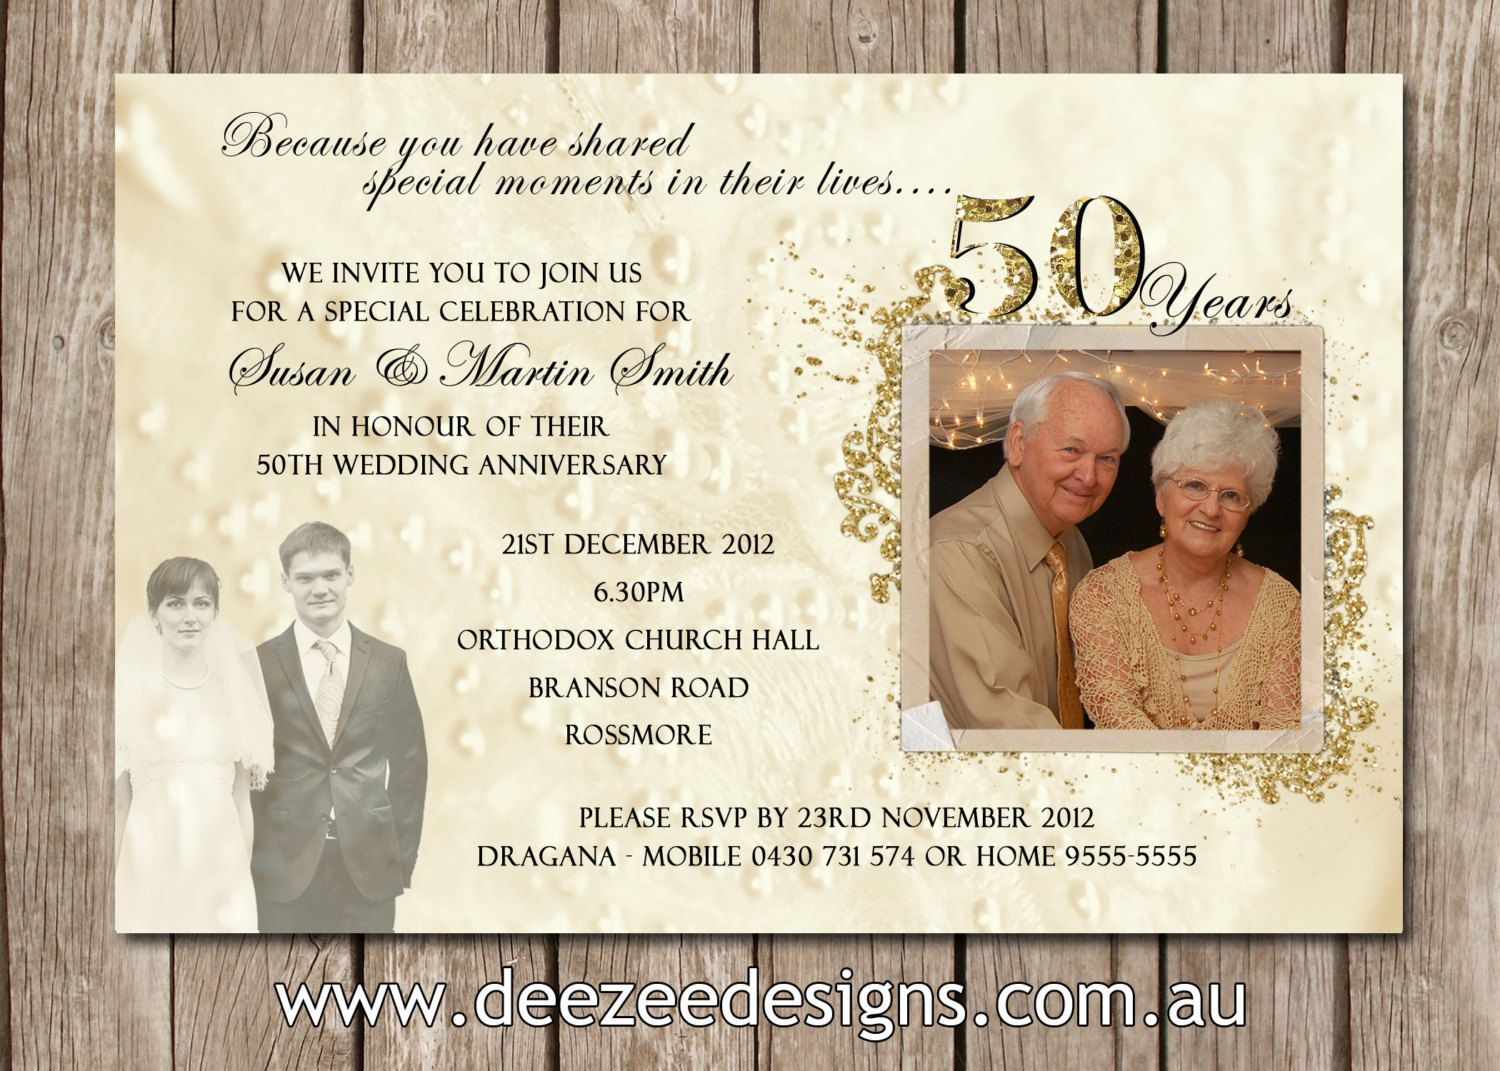 50th Wedding Anniversary Invitation Ideas: Pin By Heather Reiter On Golden Anniversary Party